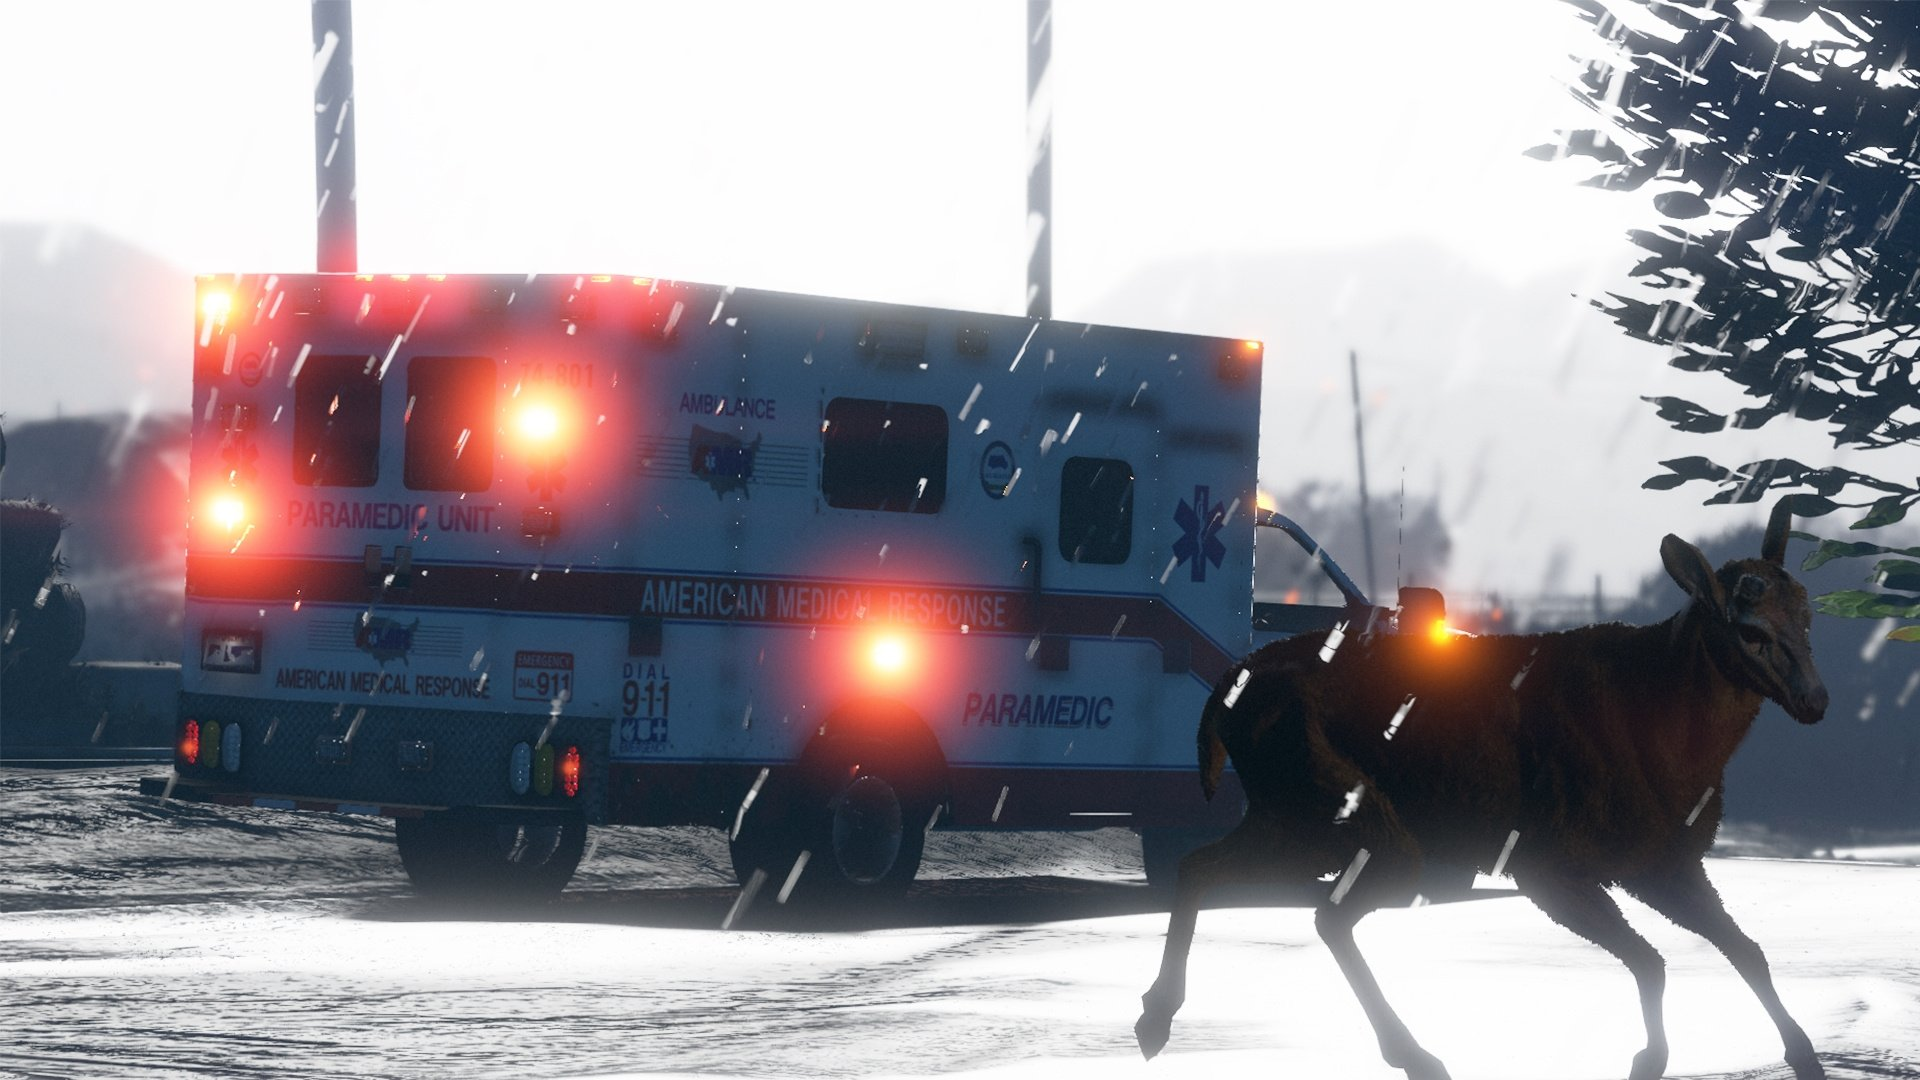 American Medical Response Amr Ambulance Skin Pack Gta5